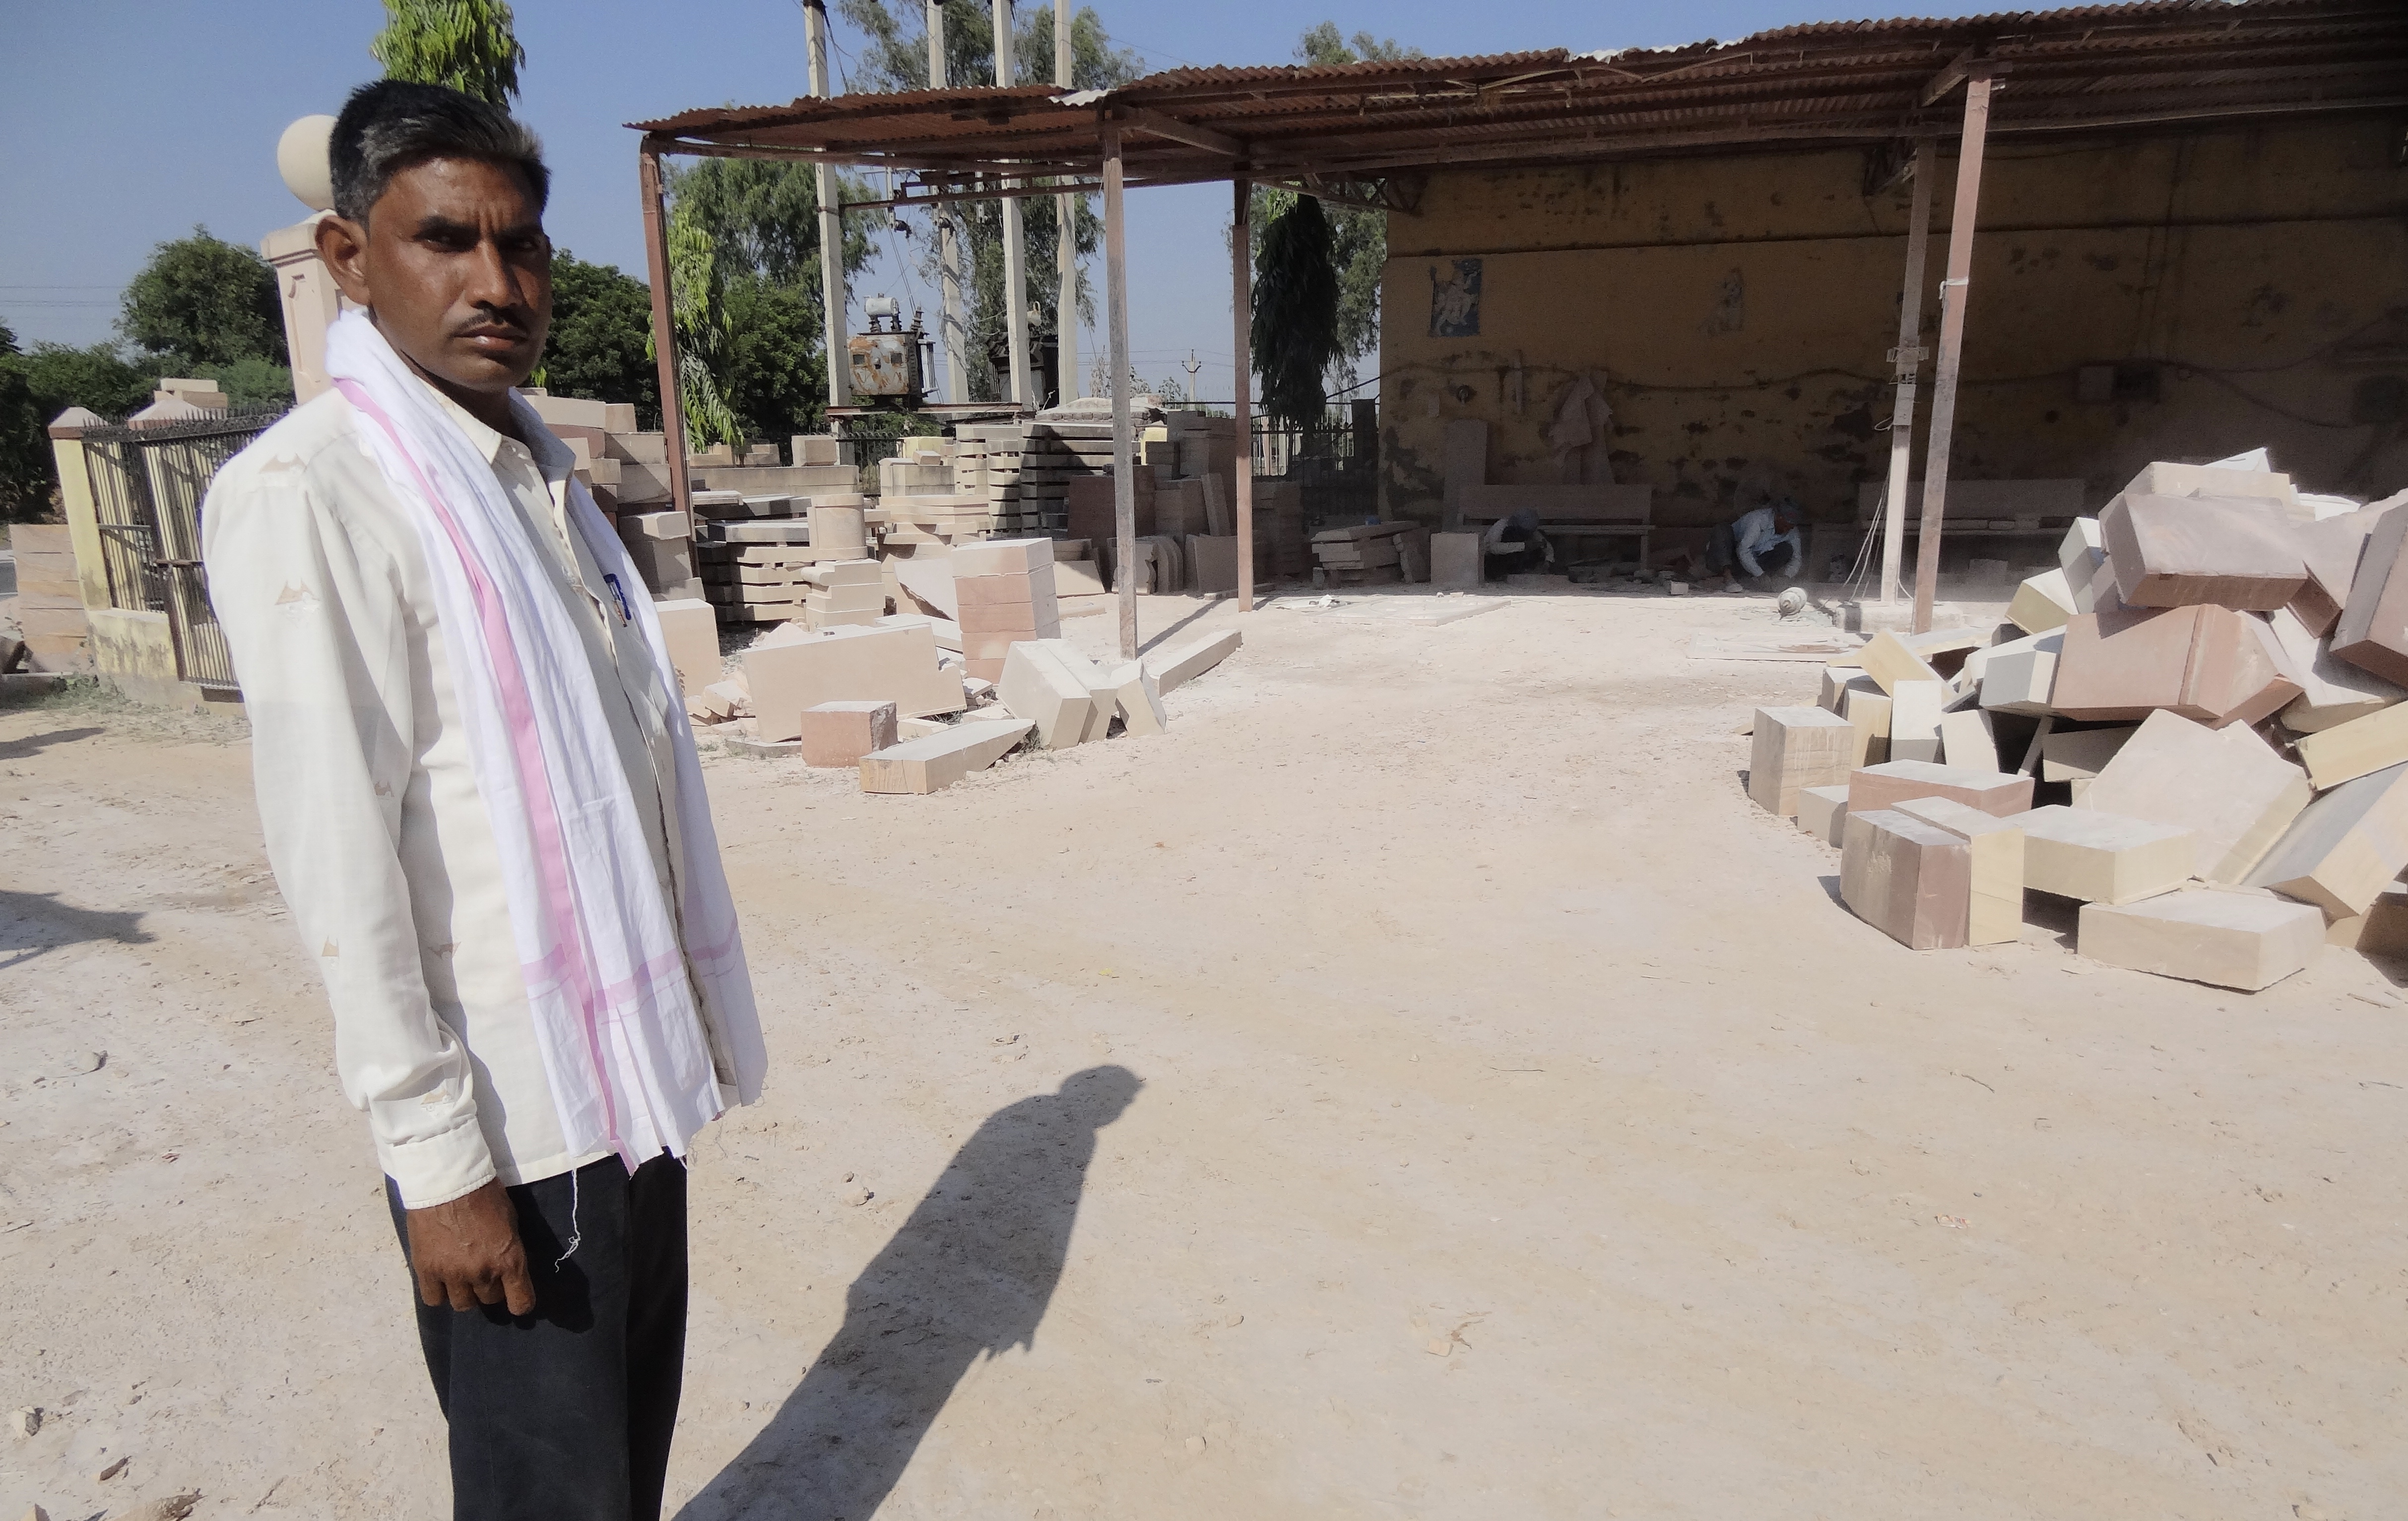 Hariom Saini at a stone-cutting factory in Dausa, Rajasthan. (Photo: Shivam Saini)